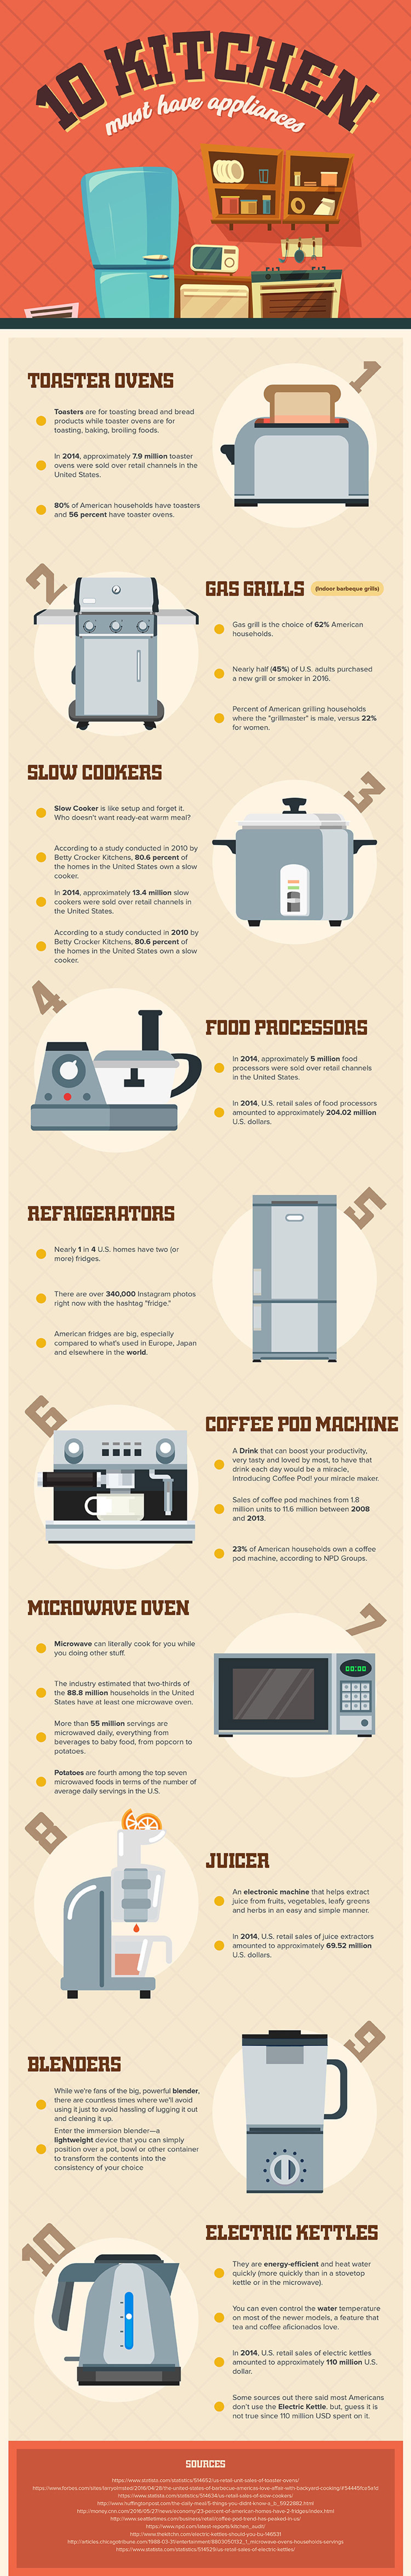 10 Kitchen Must Have Appliances Infographic